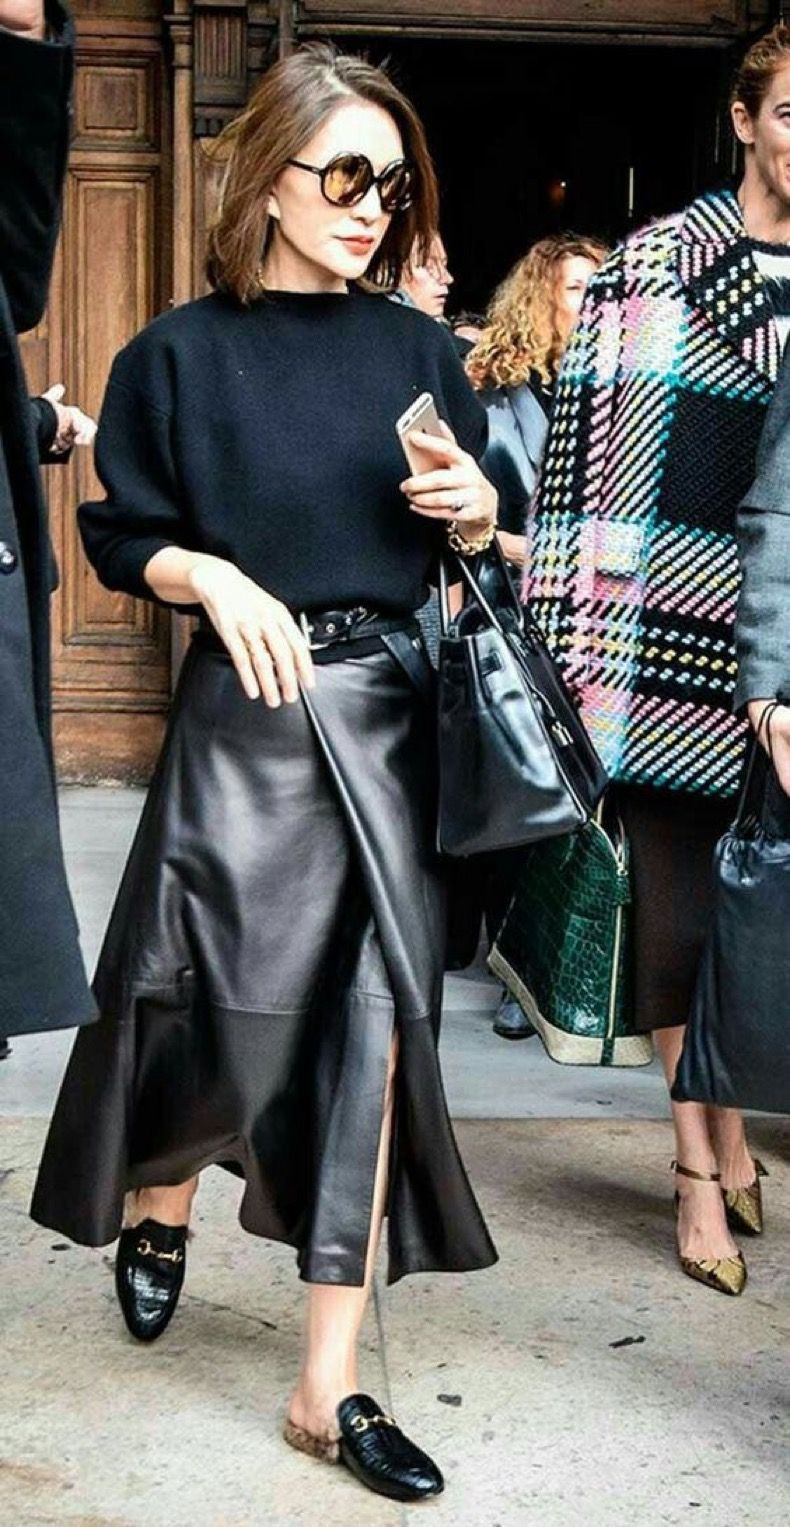 Tipswinter Fashion skirt outfits forecasting dress for summer in 2019